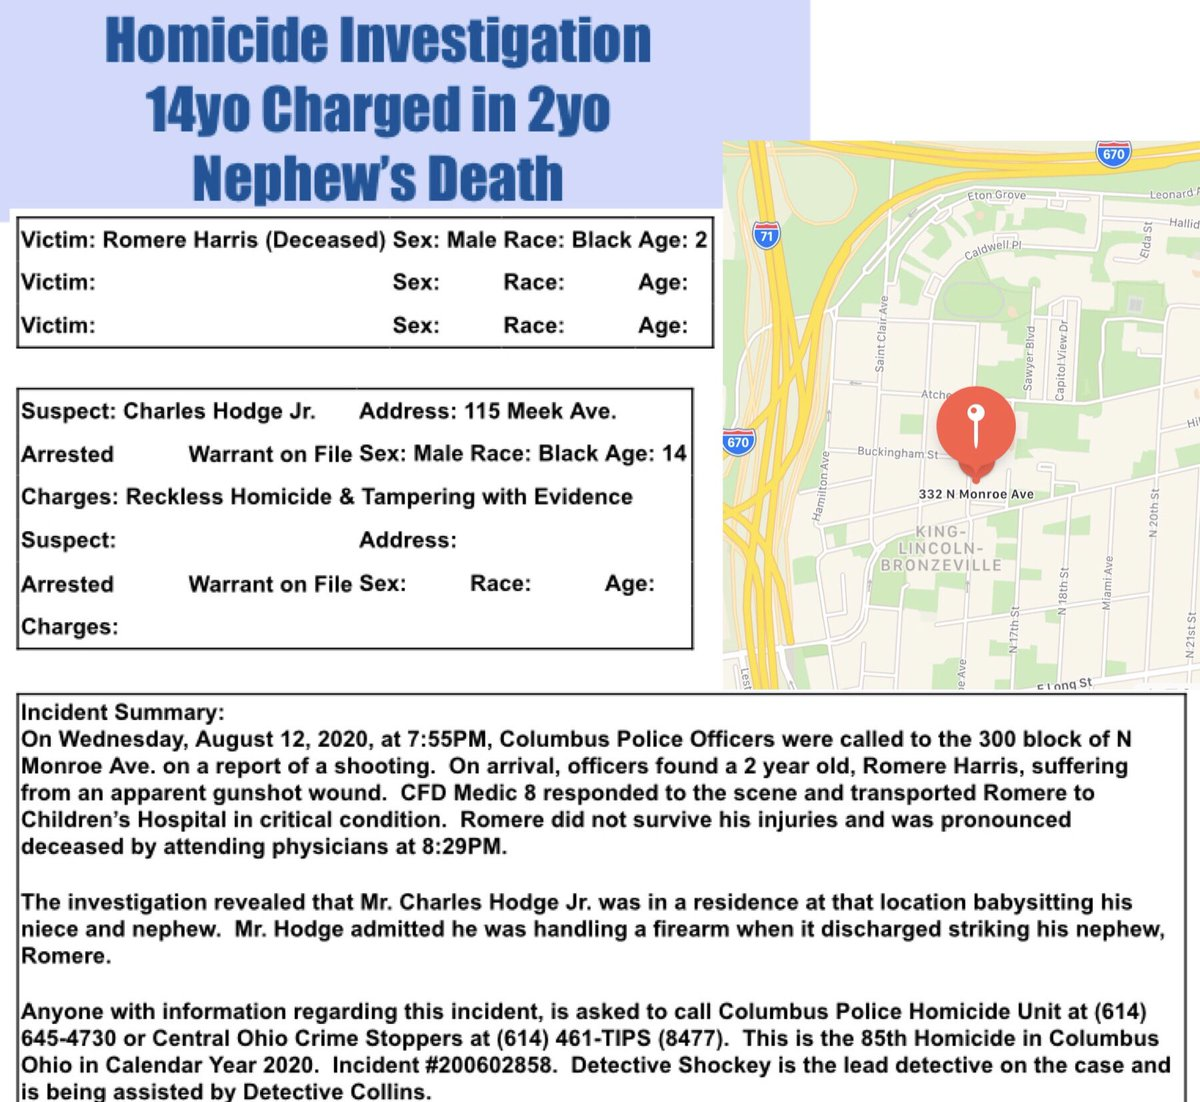 HOMICIDE INVESTIGATION:  8/12/20@7:55pm-CPD called to 300 block of N. Monroe Ave. on a shooting.  2yo Romere Harris suffered a fatal gunshot wound.   14yo uncle was babysitting his niece & nephew-admitted he handled a gun when it discharged striking his nephew.   CPD:614-645-4730